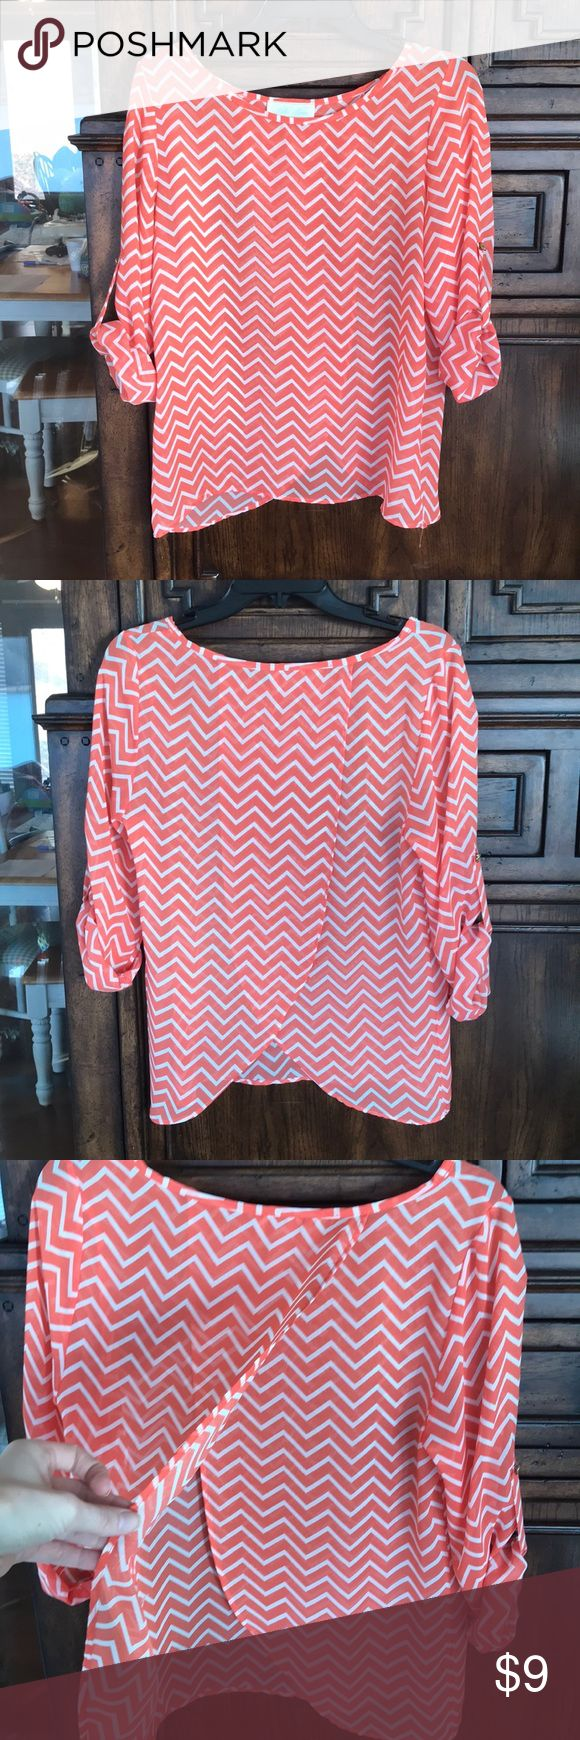 Tilly Anne Size Medium Chevron Top with Cute Back Tilly Anne Chevron Coral Top with Cute back and sleeves that roll and button up! Cute Sheer Top perfect for this spring and summer! VGUC asking $9. Smoke Free Home Tilly Anne Tops